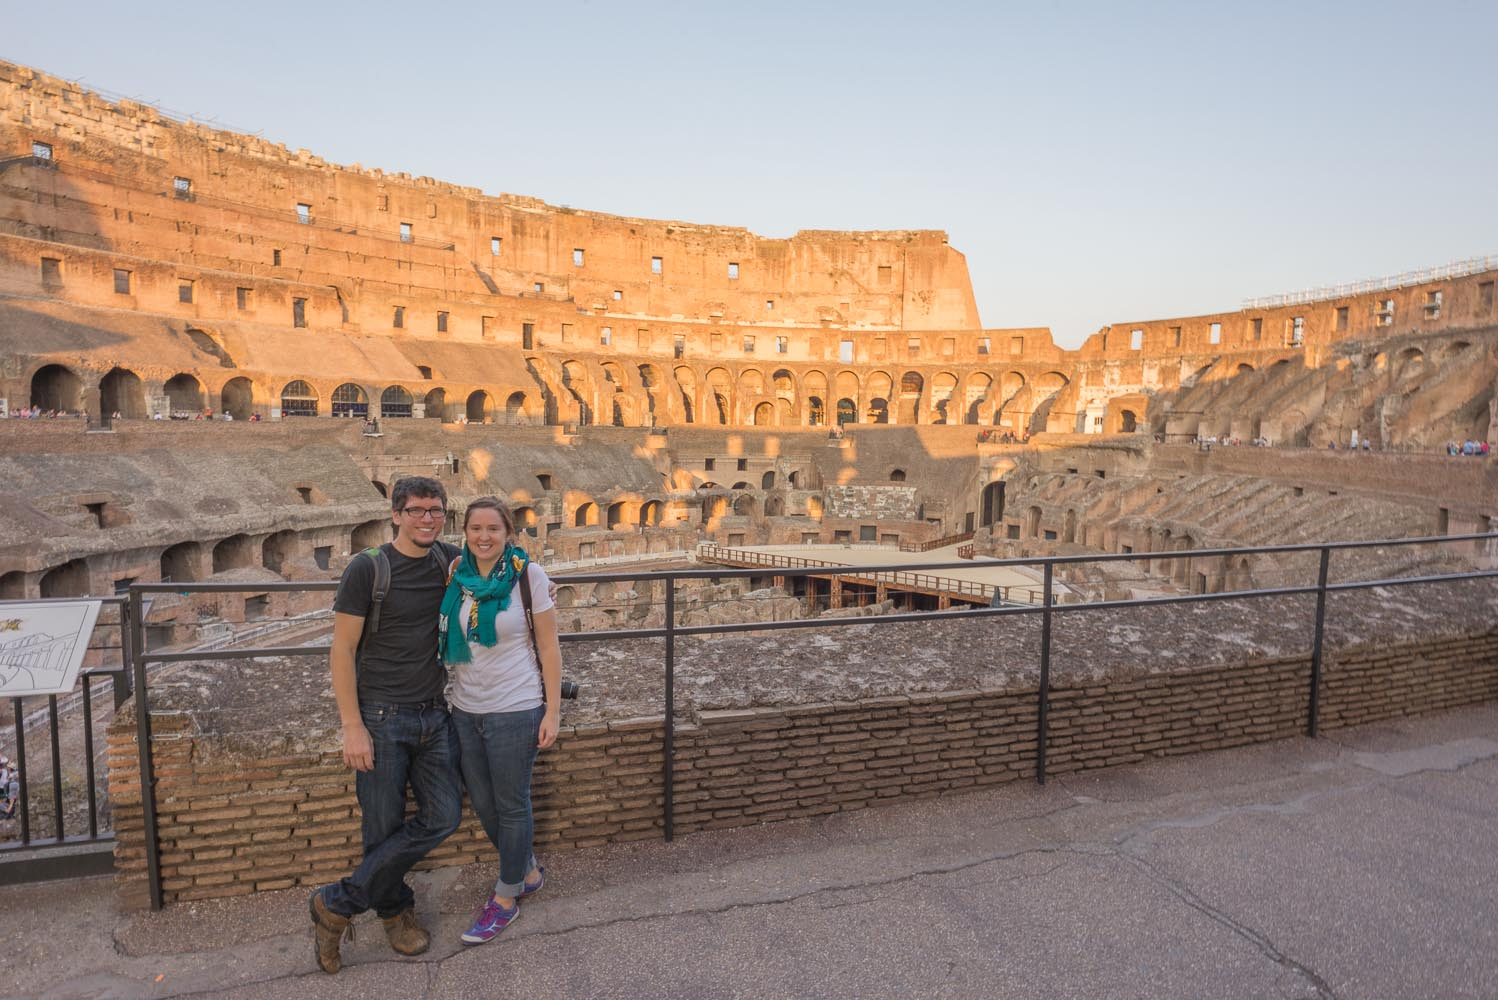 Tom and Alison in the Colosseum, Rome